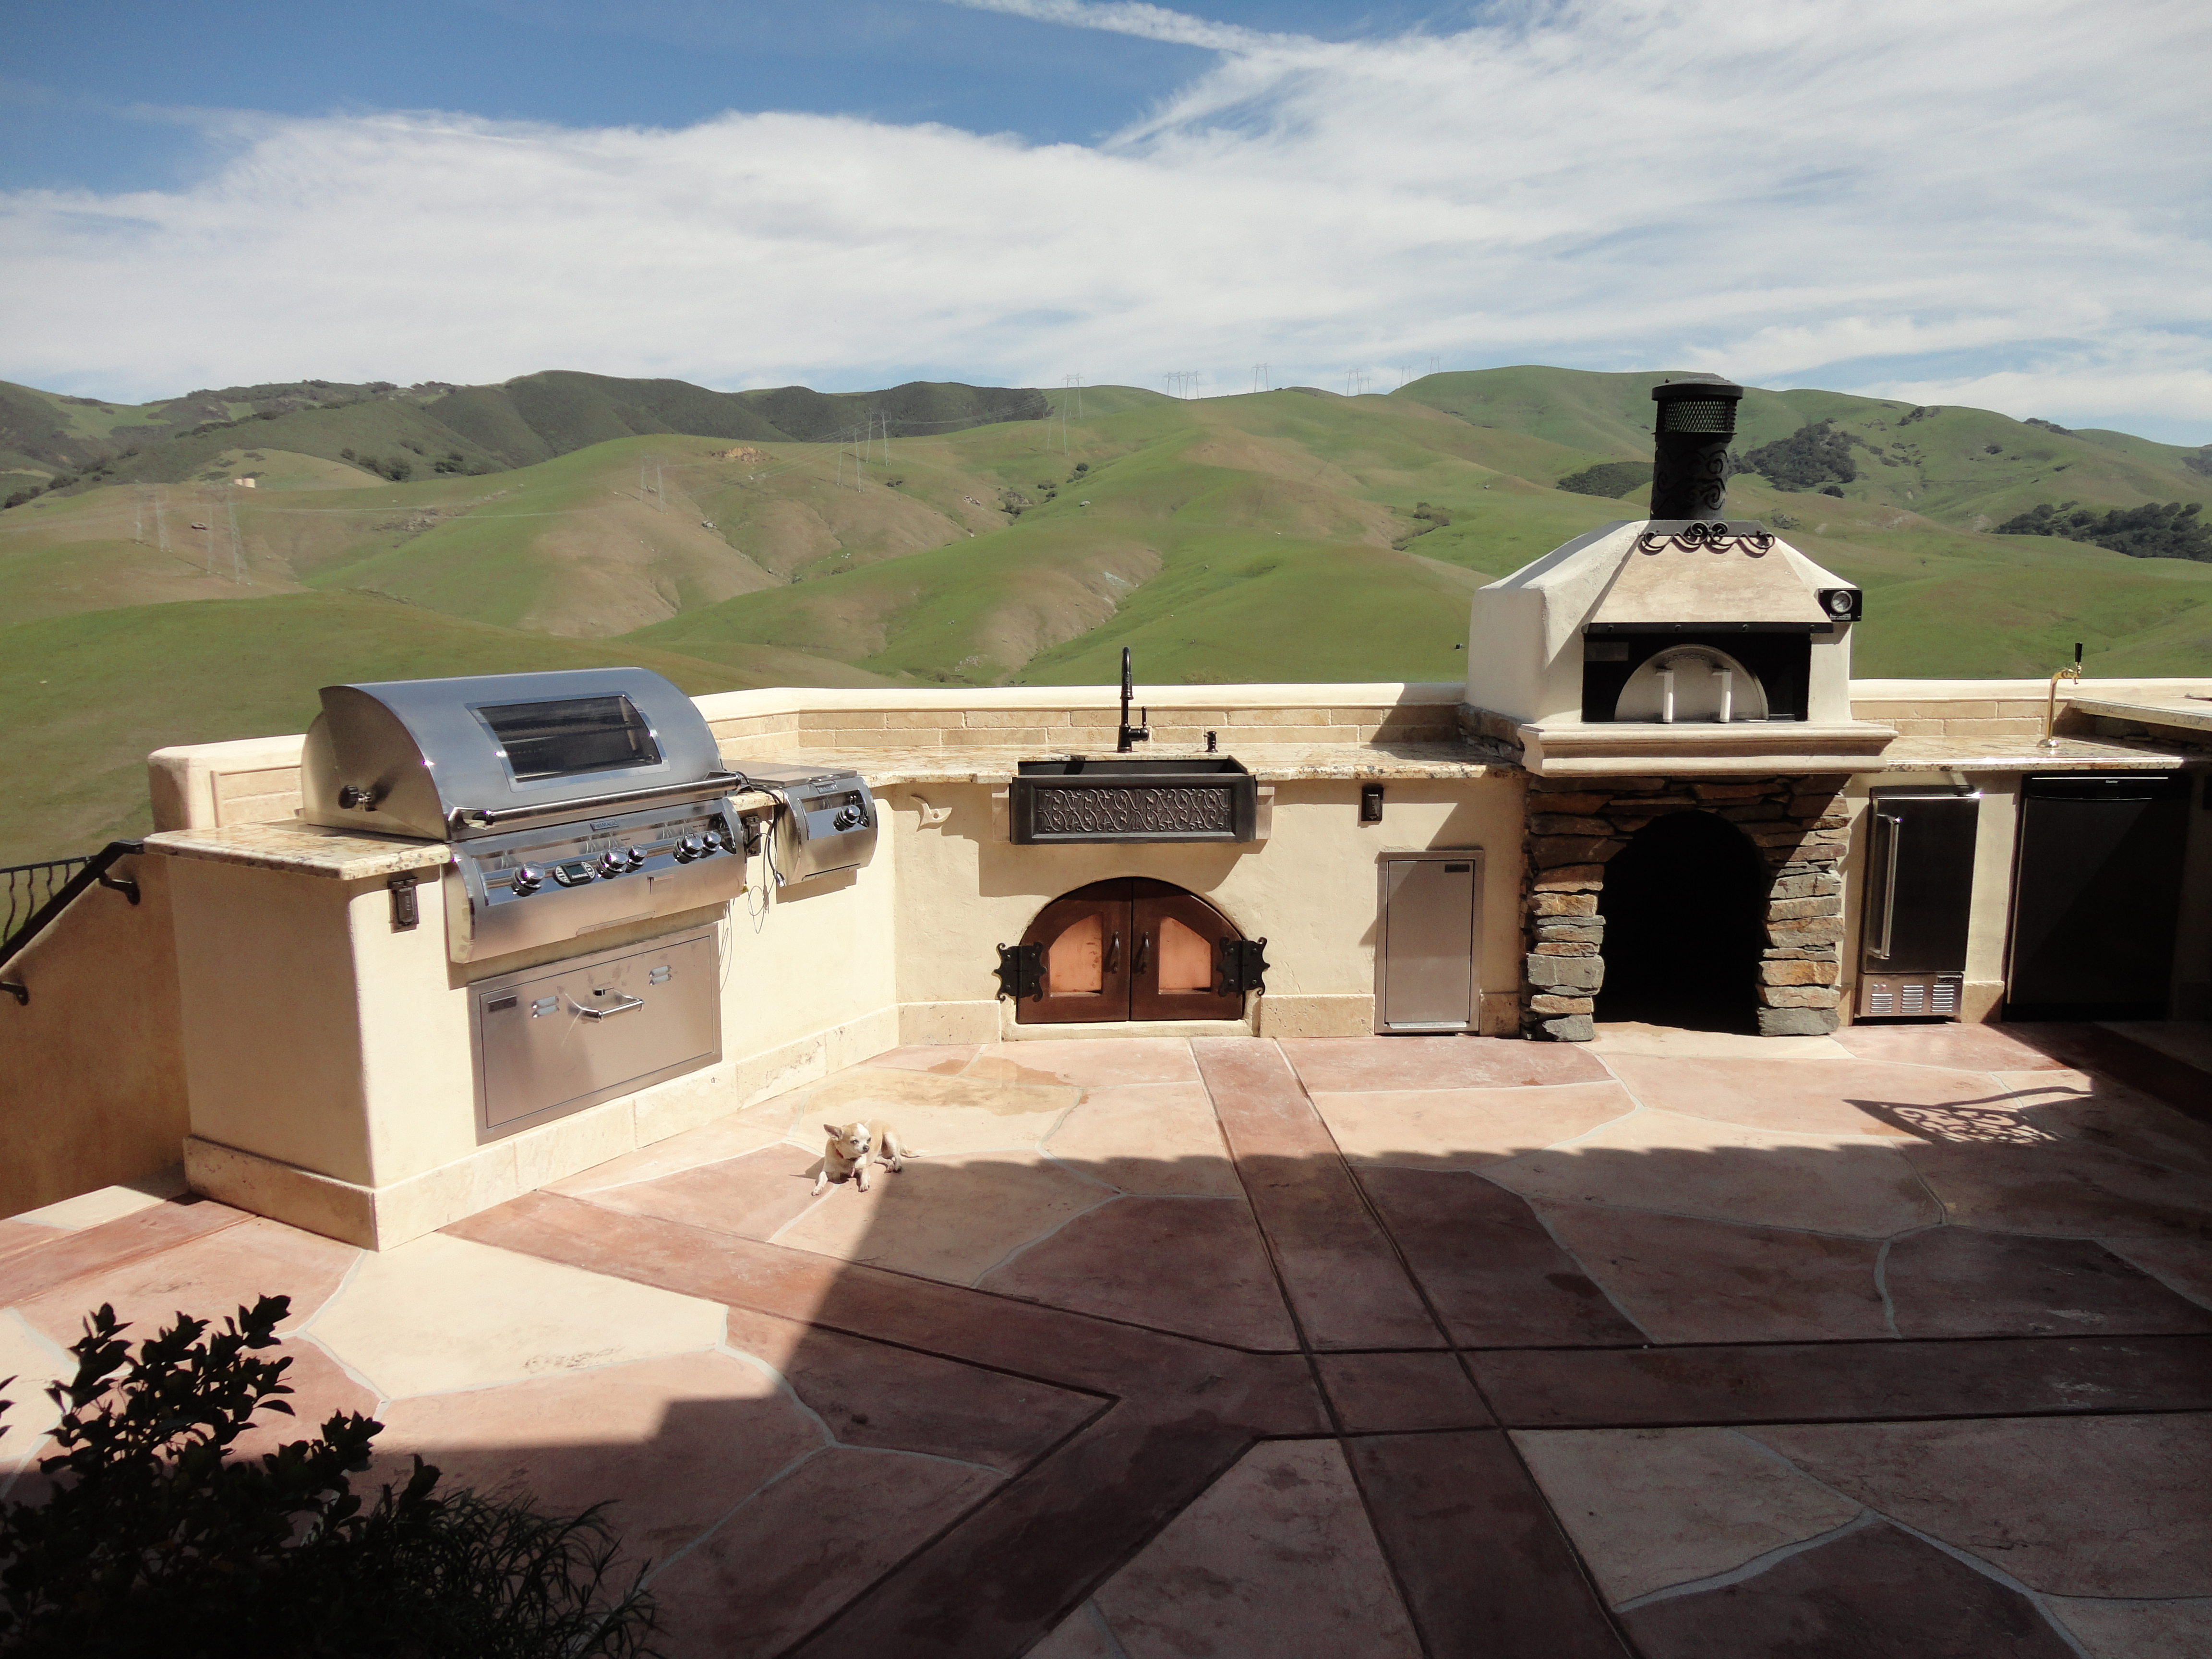 outdoor kitchen oven premade island tuscan themed with water featrure fire pit